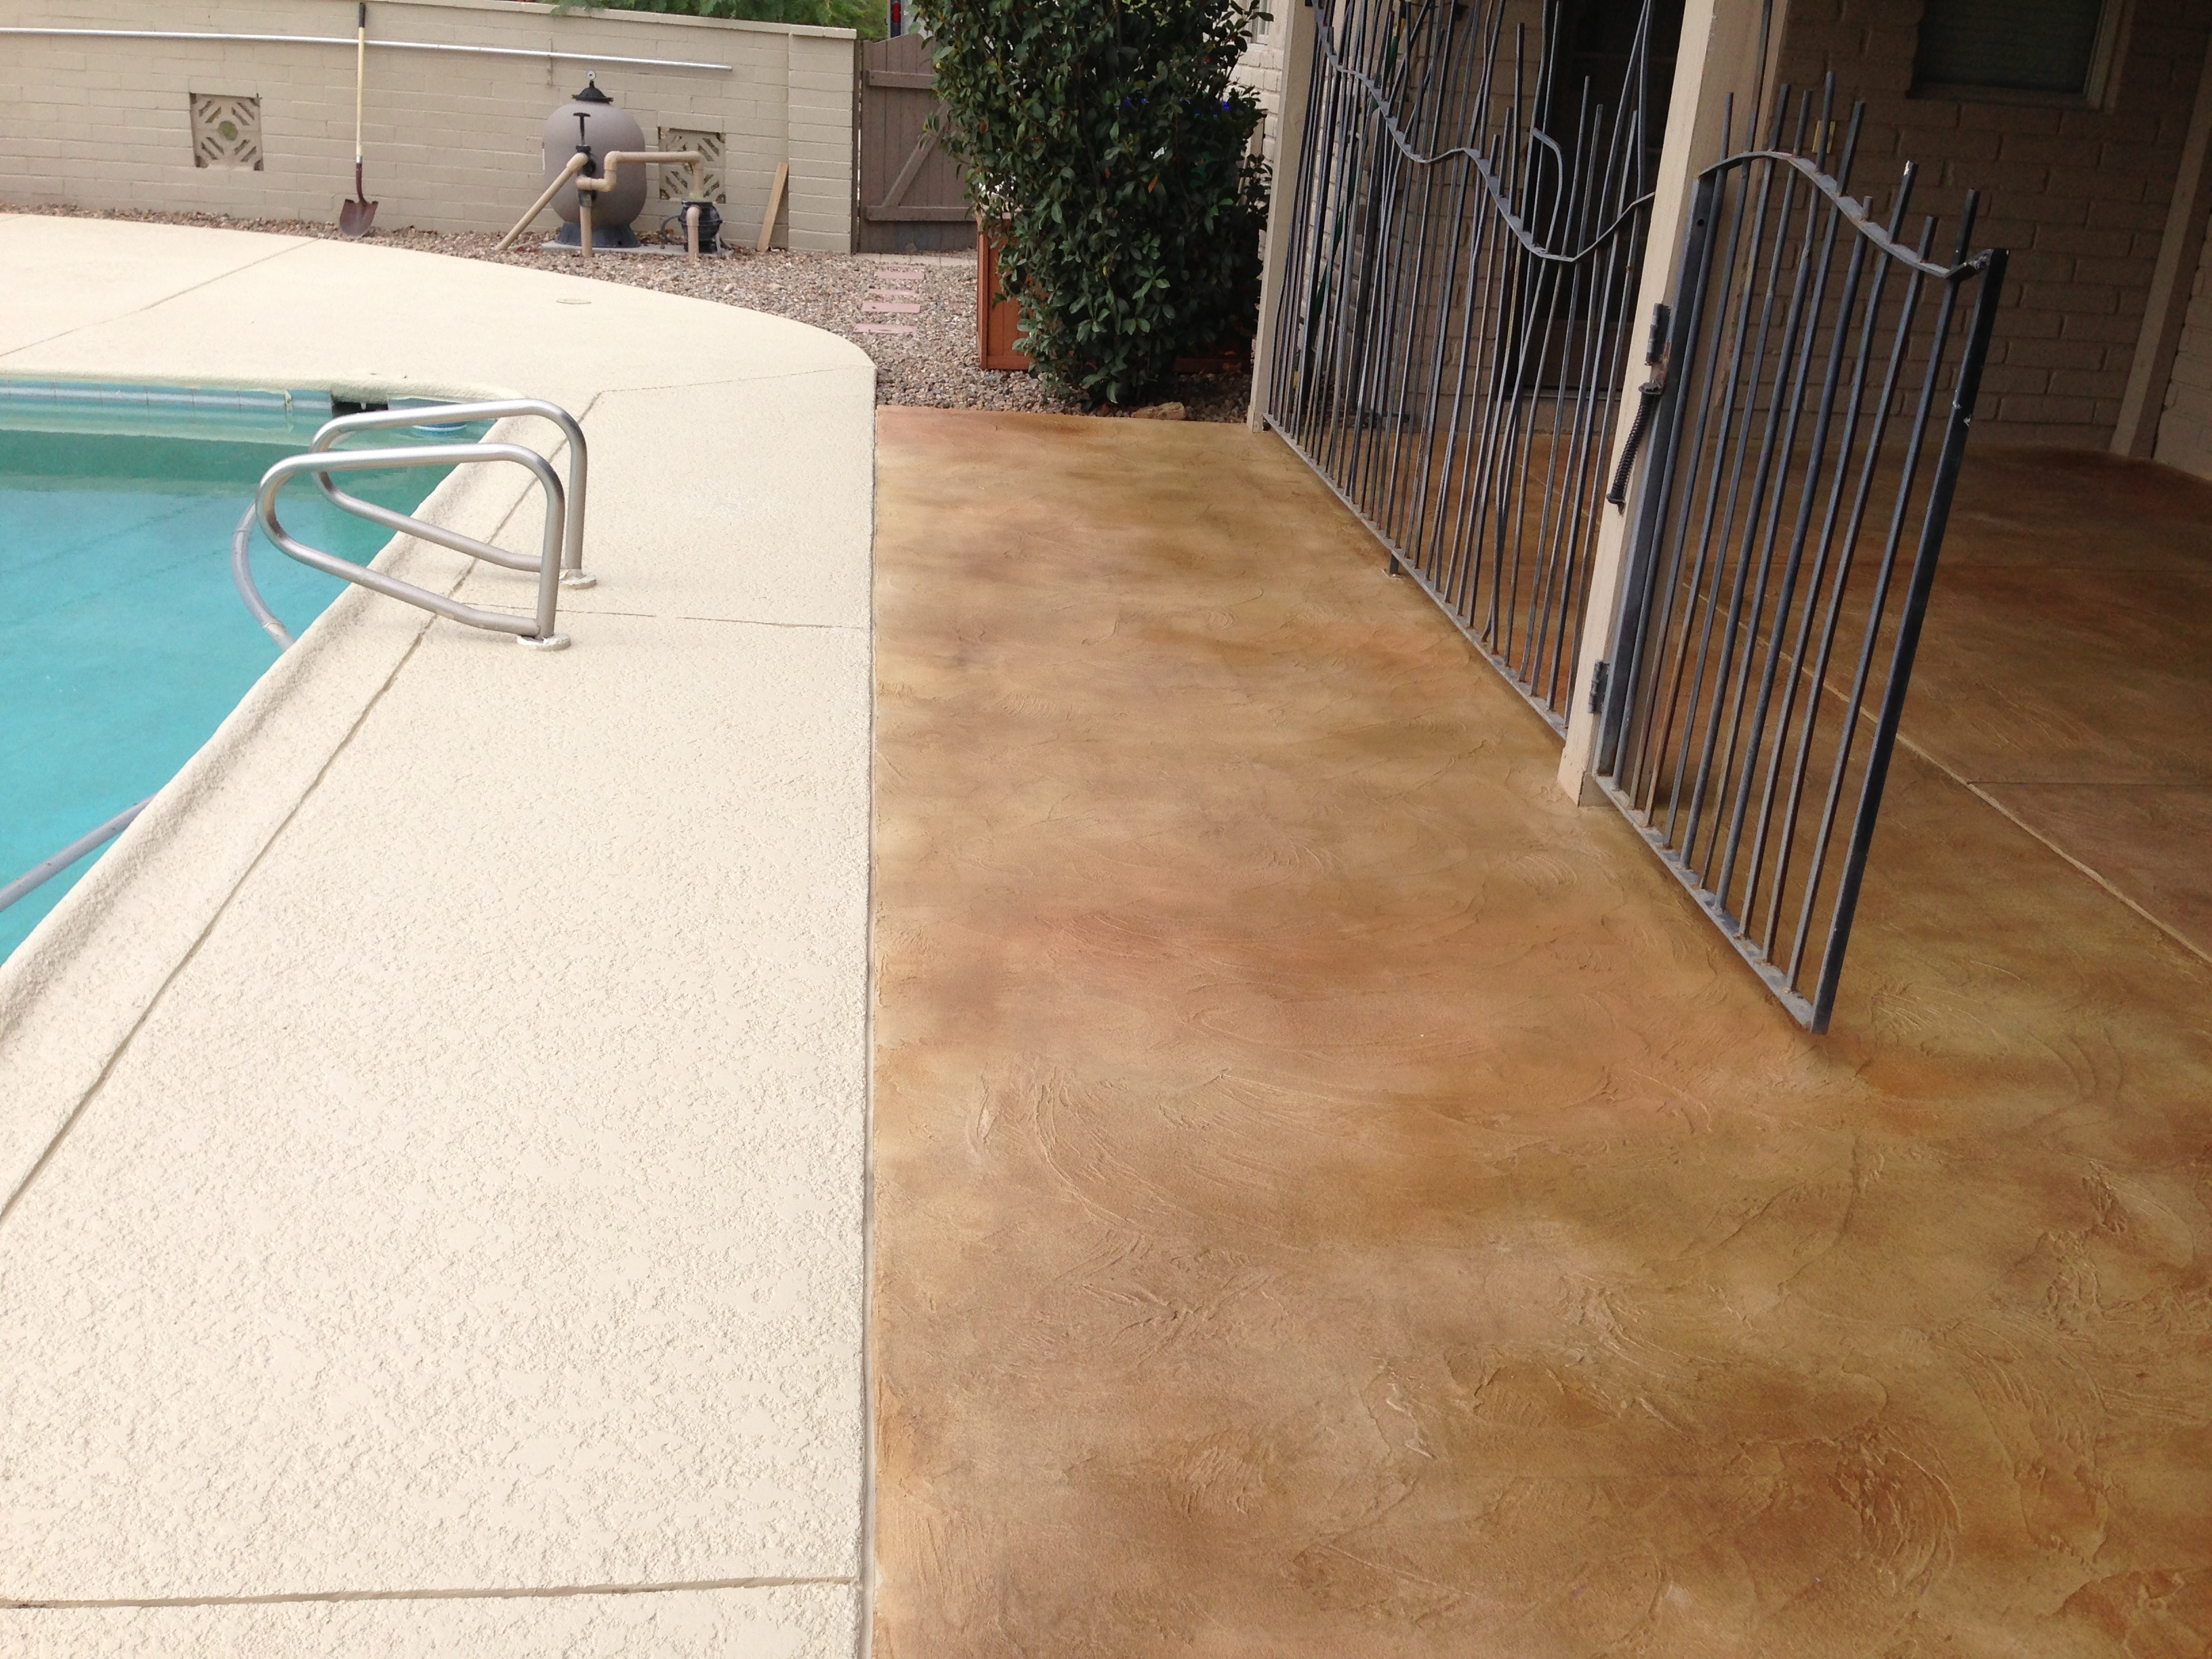 New Stained Concrete Overlay And Pool Deck Addition Gives This Backyard A  Brand New Look